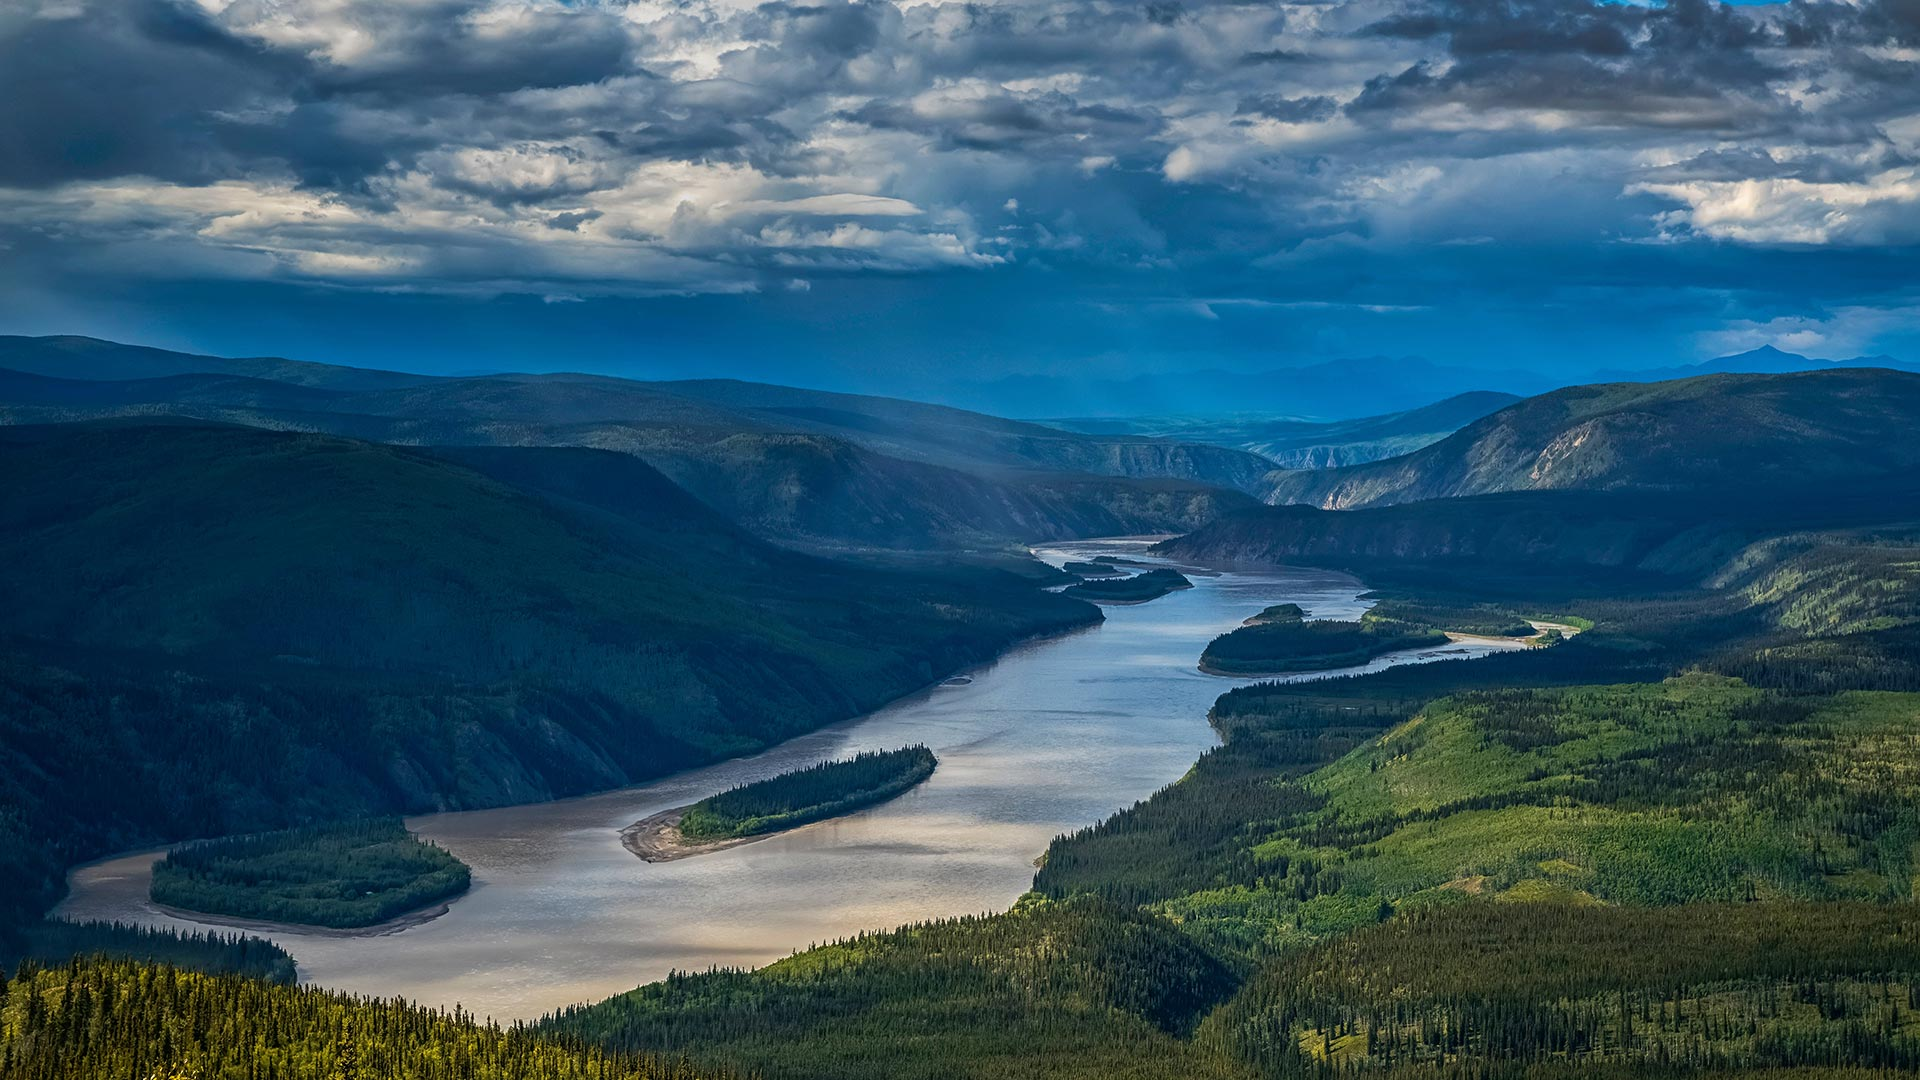 Yukon River viewed from the Midnight Dome, Dawson City, Yukon, Canada (© Robert Postma/Getty Images)